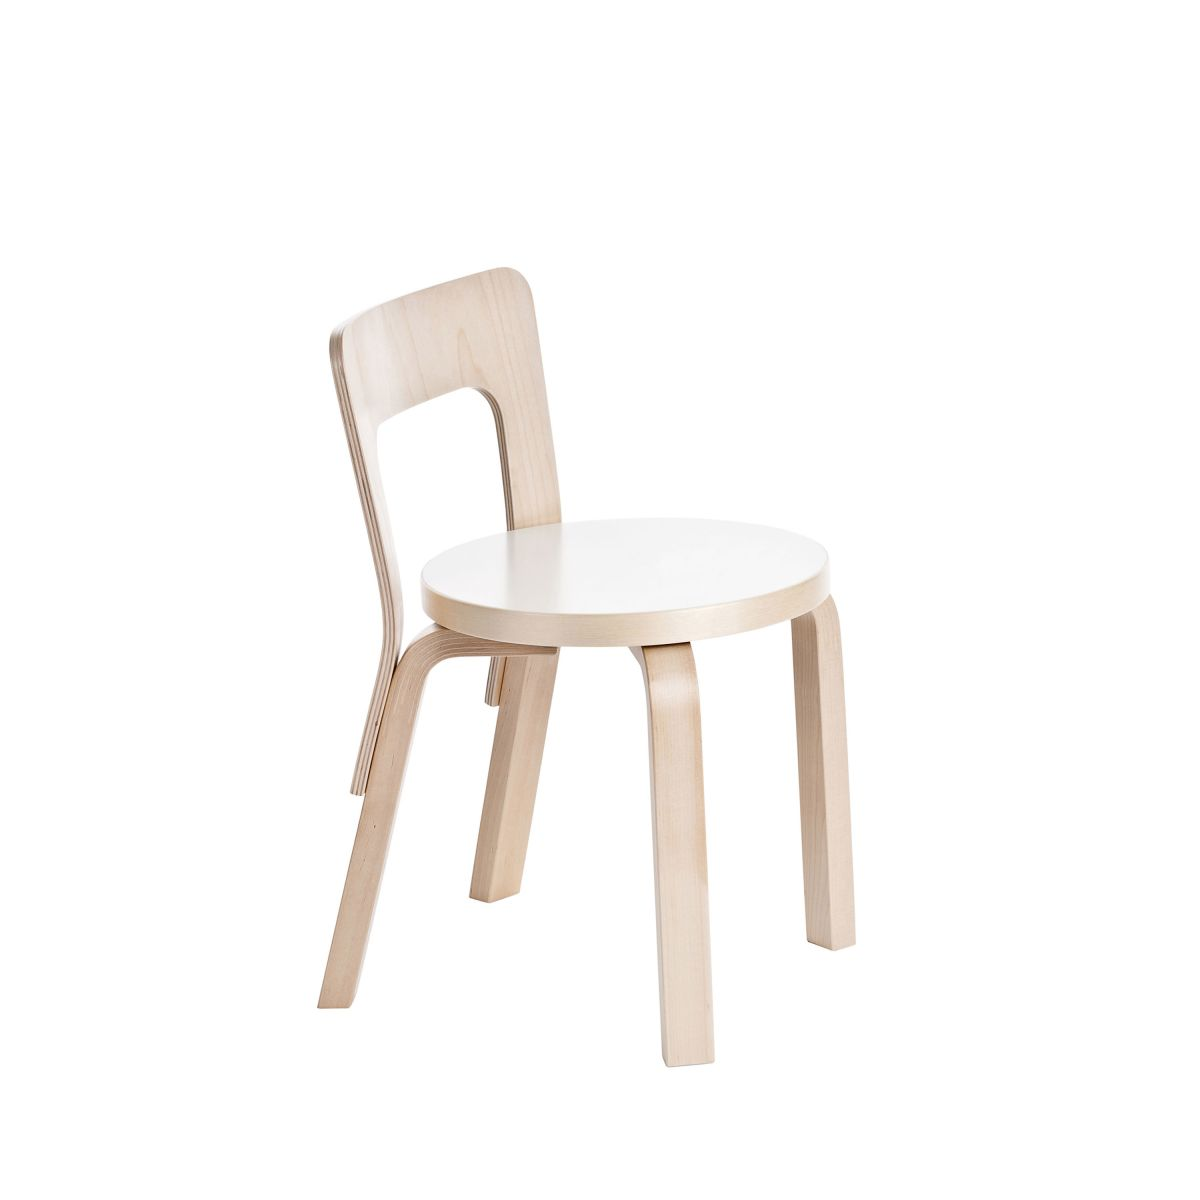 Childrens-Chair-N65-White-Laminate_Web-1977270